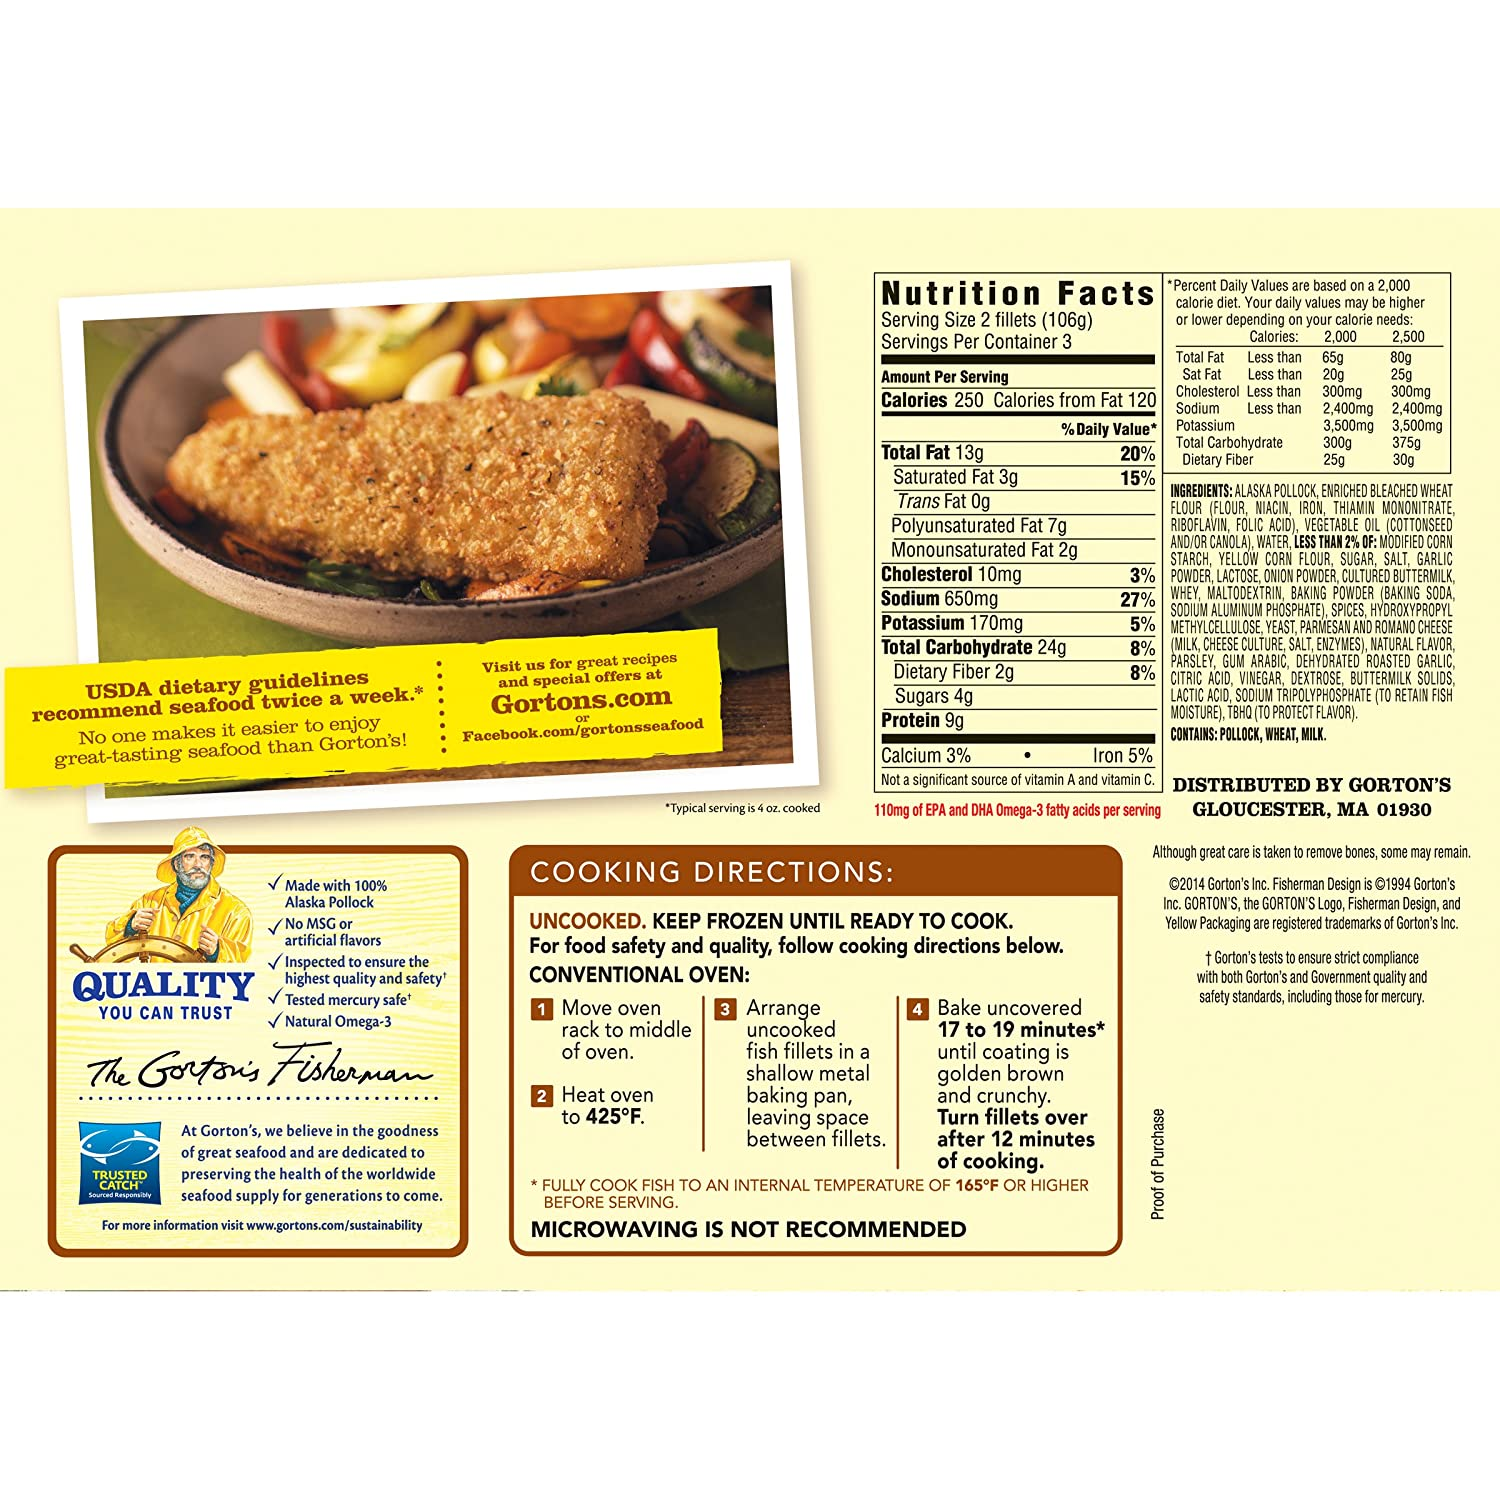 Gortons, Roasted Garlic & Italian Herb Artisan Fish Fillets, 11 oz (Frozen): Amazon.com: Grocery & Gourmet Food